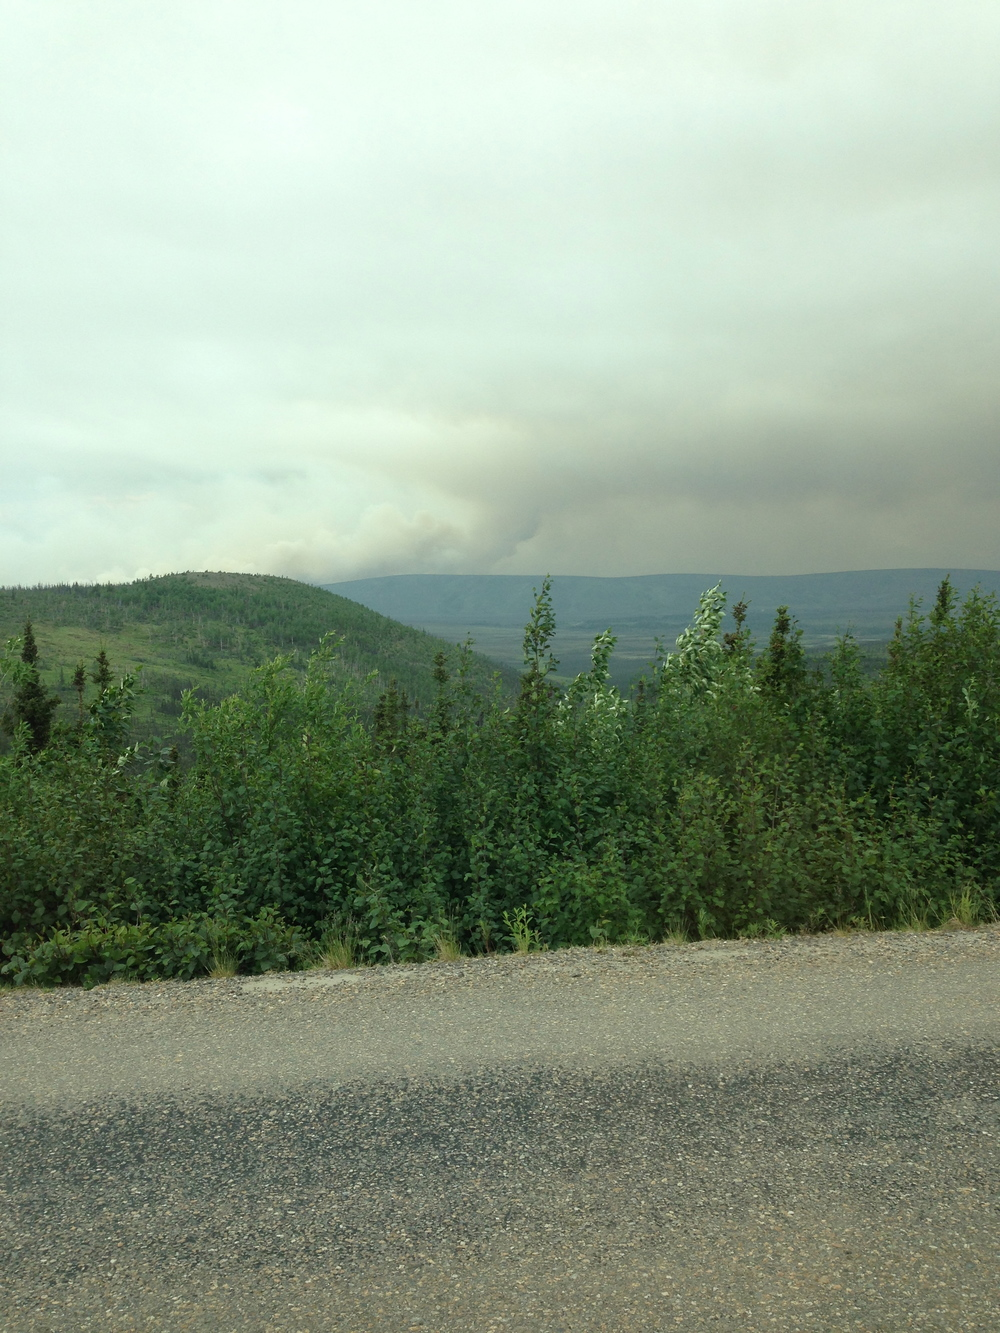 This is smoke from a fire we observed from the Dalton Highway. This fire is currently about 400 acres large. I was informed this is relatively small in the scale of Alaska fires!